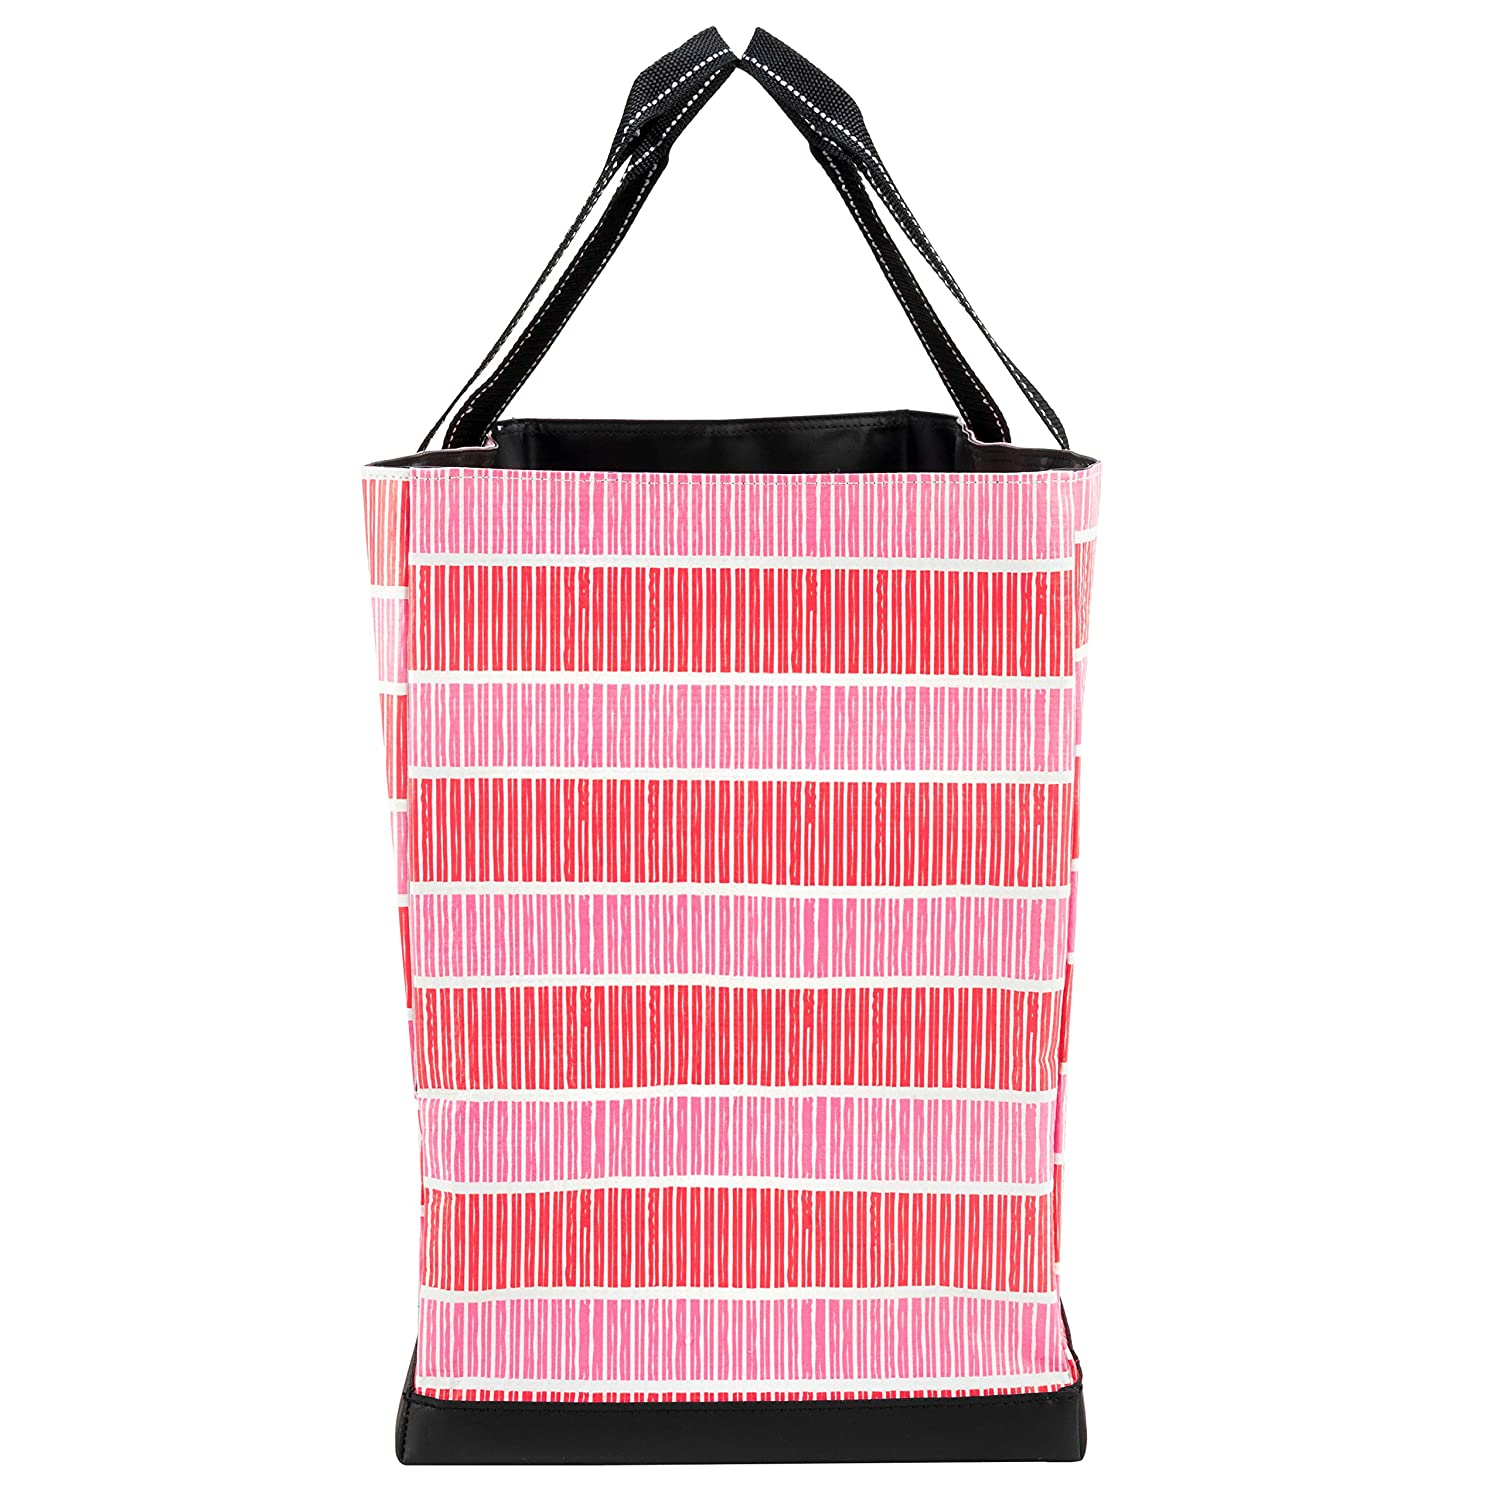 Text match mobile dating scout bags totes